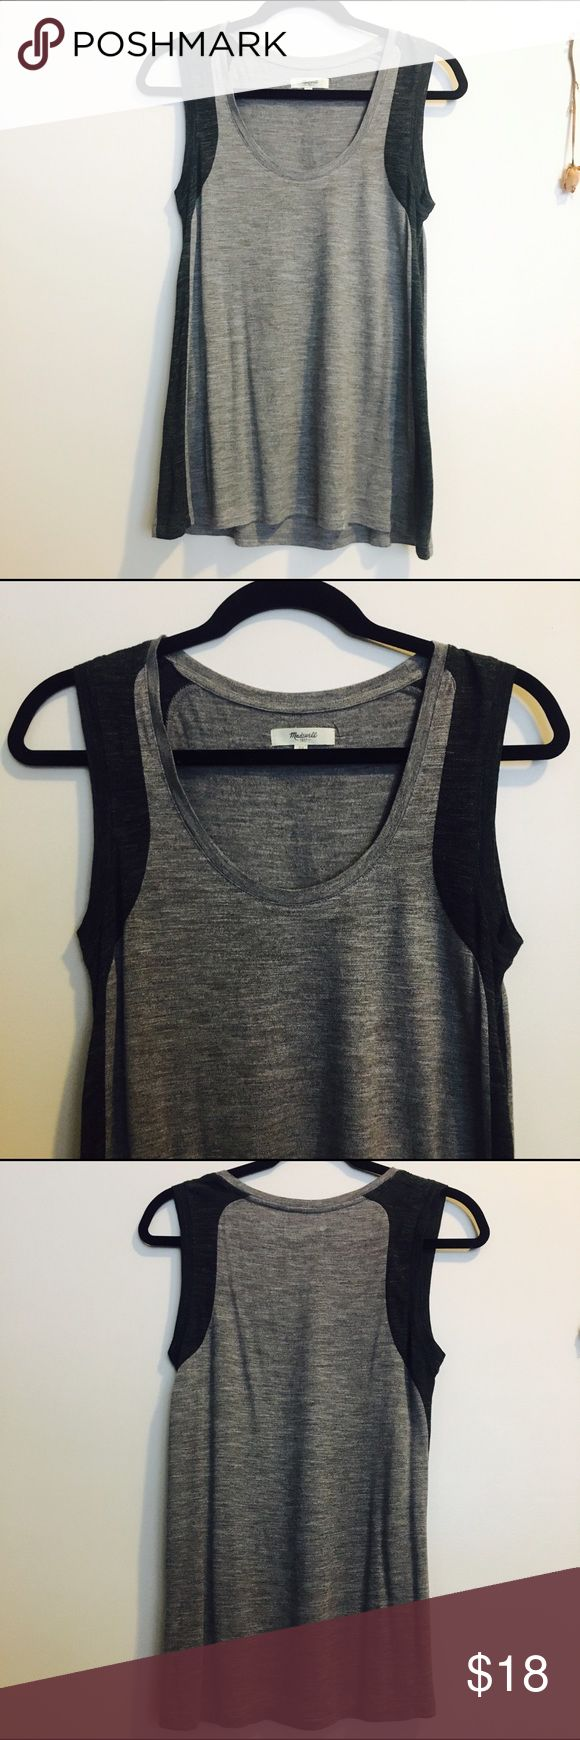 Soft Madewell tank Block grey comfort tank from Madewell! Worn maybe 2-3 times max, this beauty is soft, comfortable, and made of amazing material. It's a cool grey color that will look great paired with jeans and a cardigan or shorts and some flip flops for a more casual look! Madewell Tops Tank Tops